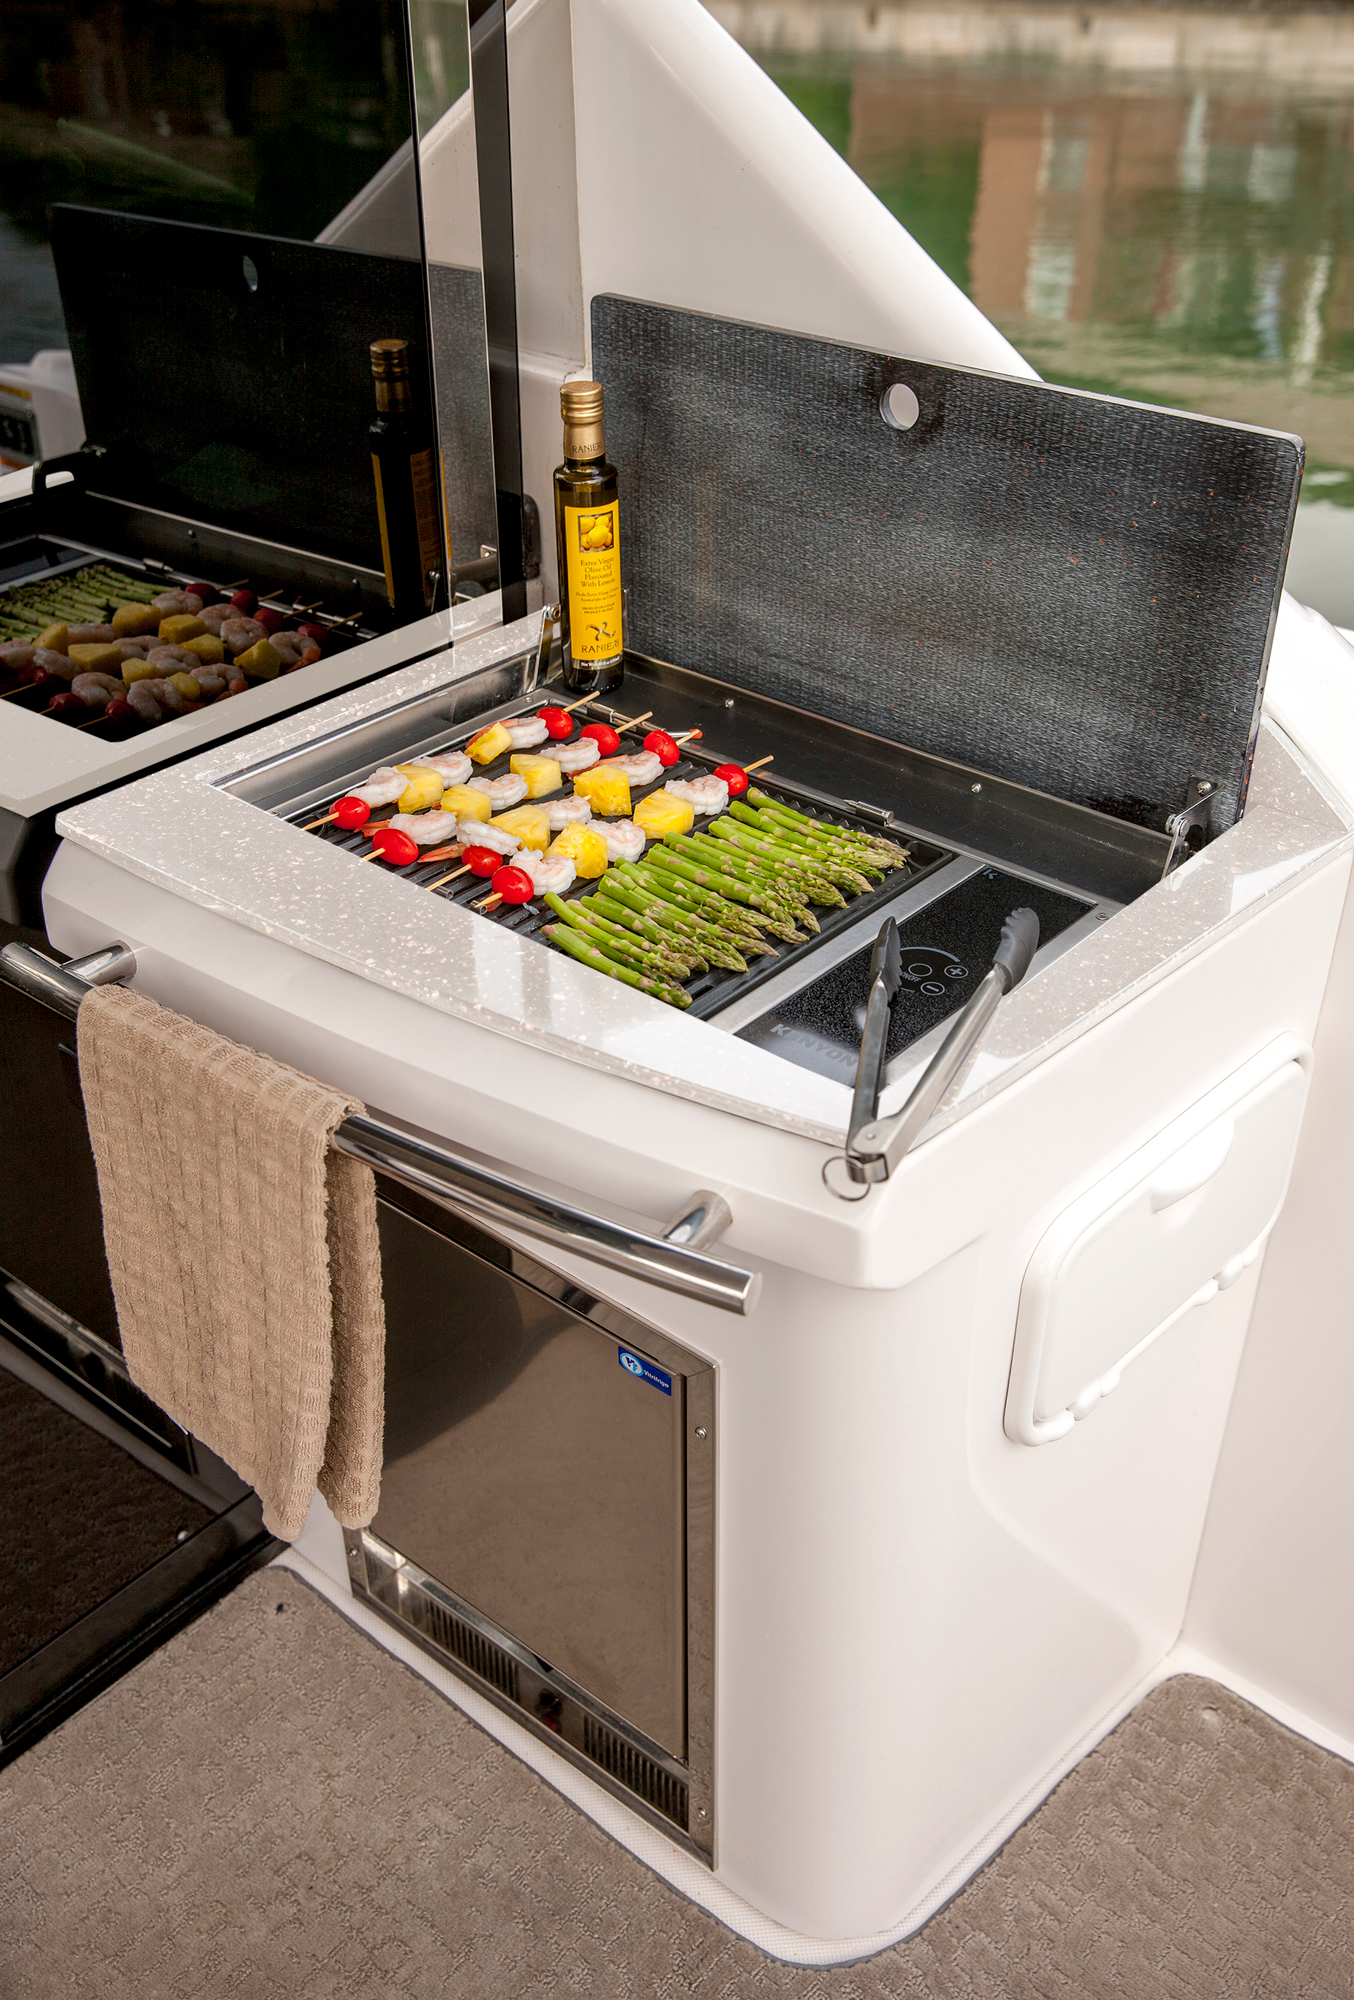 Gasgrill Seattle Entertain And Feed Guests Well With The Refreshment Center And Gas